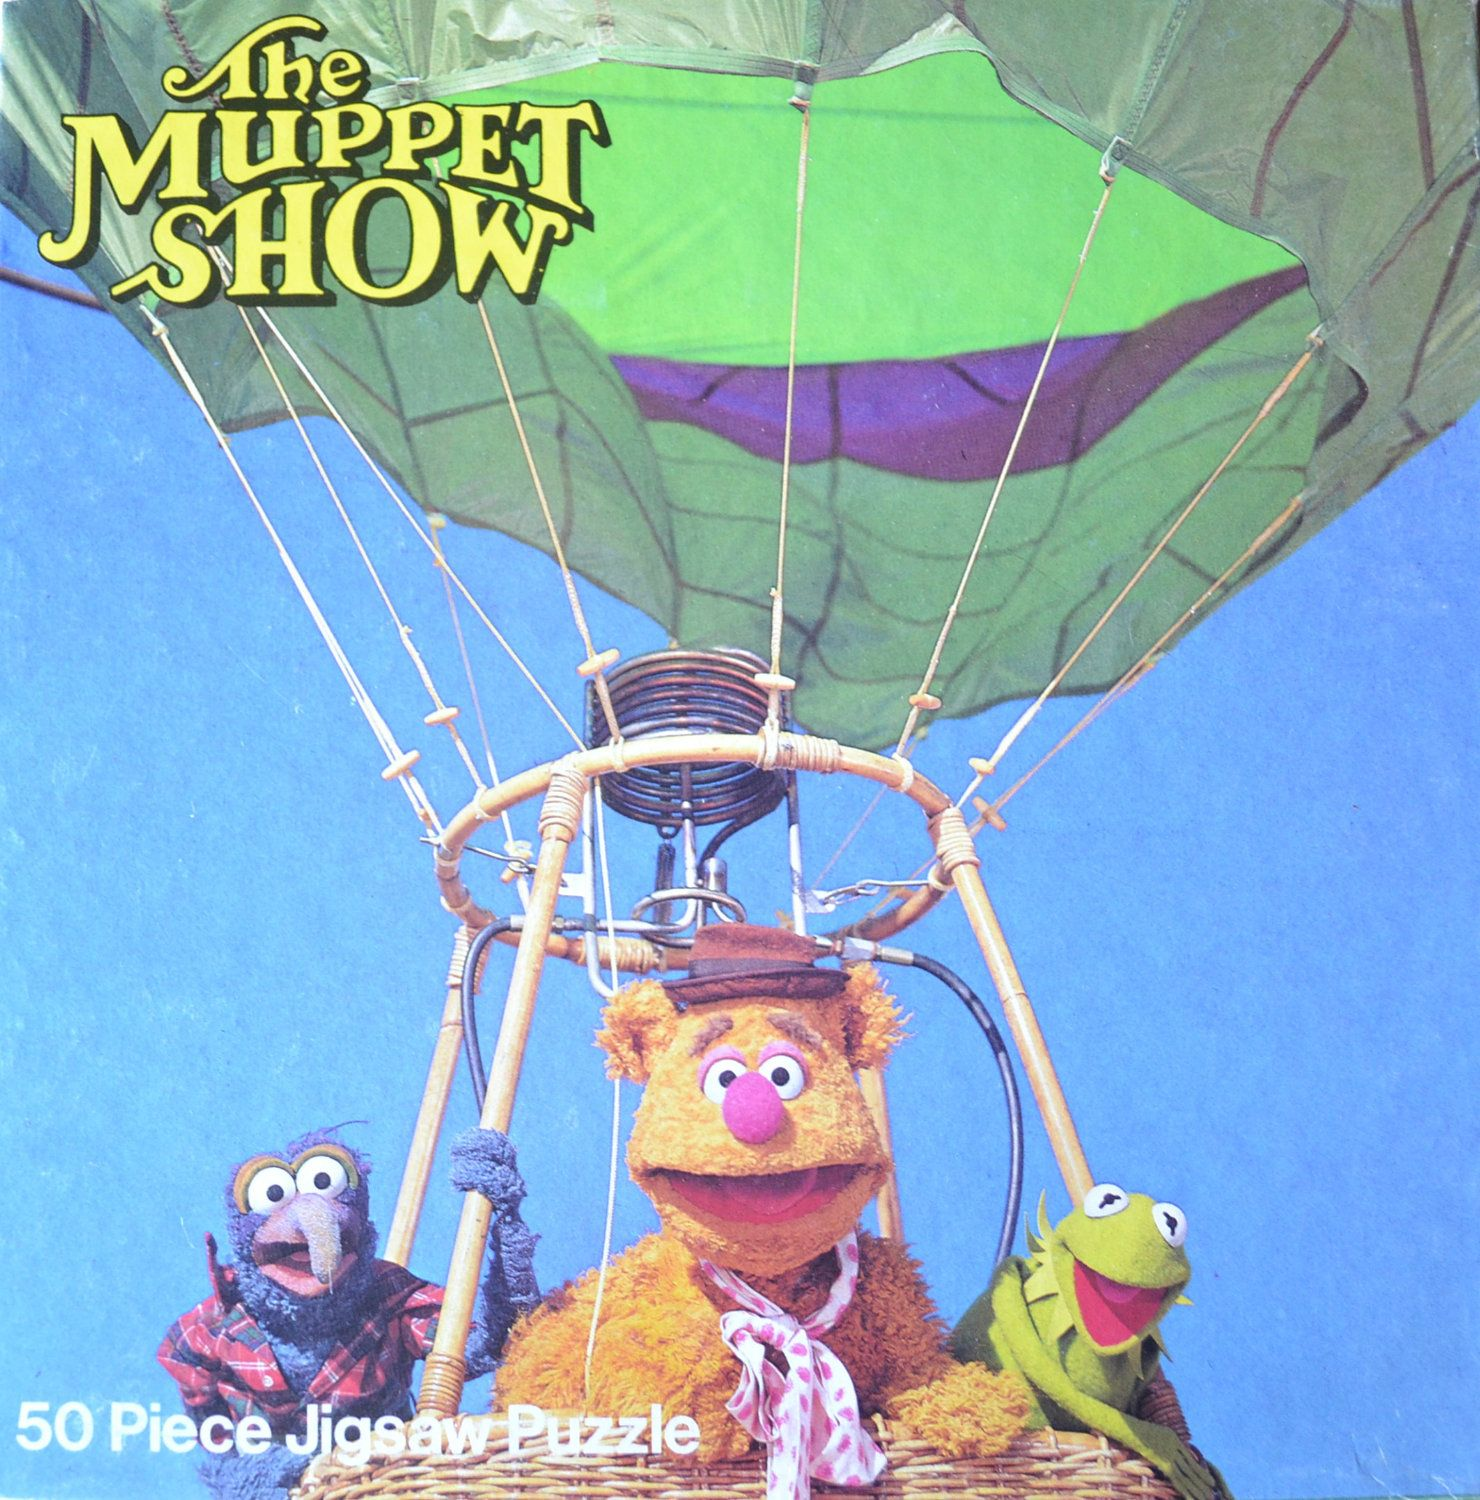 the muppet show 50 piece jigsaw puzzle 1981 3 50 via etsy